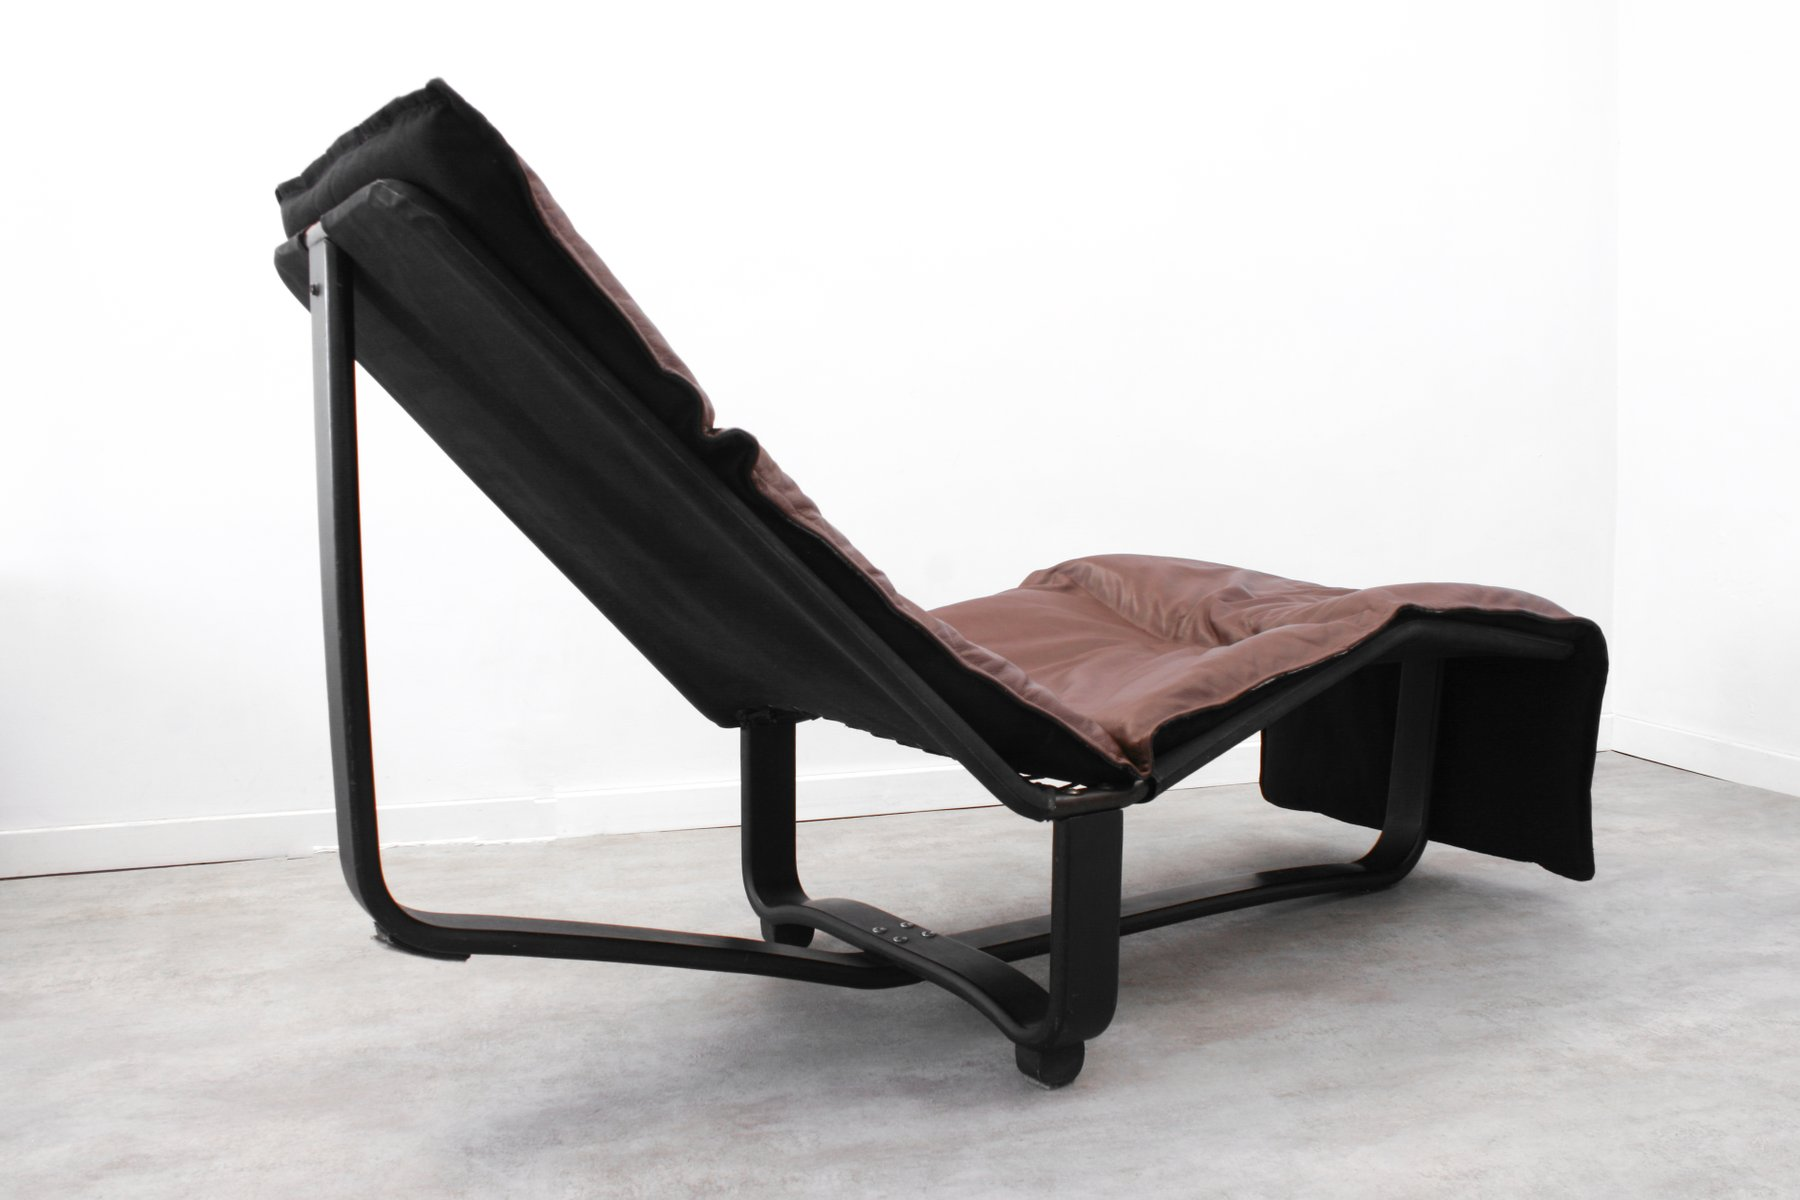 chaise longue auf englisch with Chaise Longue Rest By Ingmar Knut Relling For Westnofa 1970s on 8017065 Een Chaise Longue In Paarse Stof 21e Eeuw additionally Franzoesische Chaise Longue Mit Geometrischem Druck 1940er 1 further 1348504 also 28373 R l Mediterraner Einrichtungsstil in addition Lc 4 Chaise Longue Von Le Corbusier Fuer Cassina 1930er.